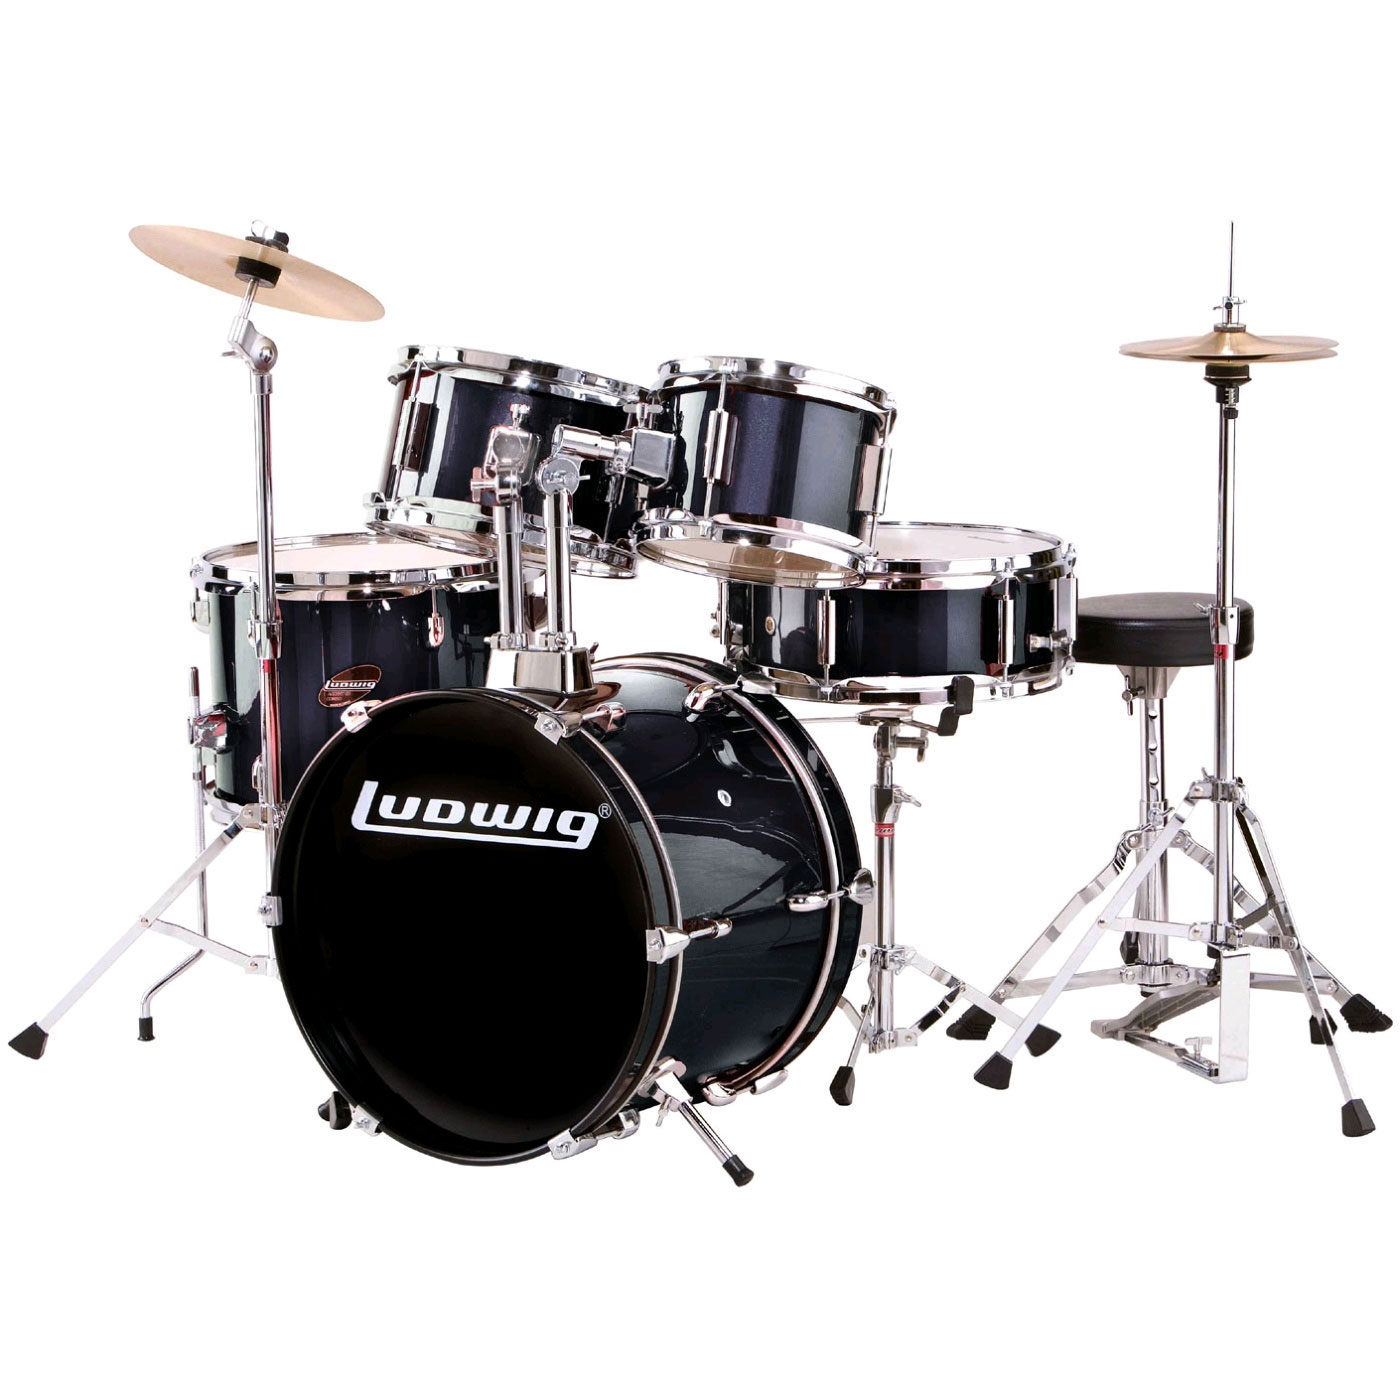 "Ludwig 5-Piece Junior Drum Set with Hardware (16"" Bass, 8/10/13"" Toms)"